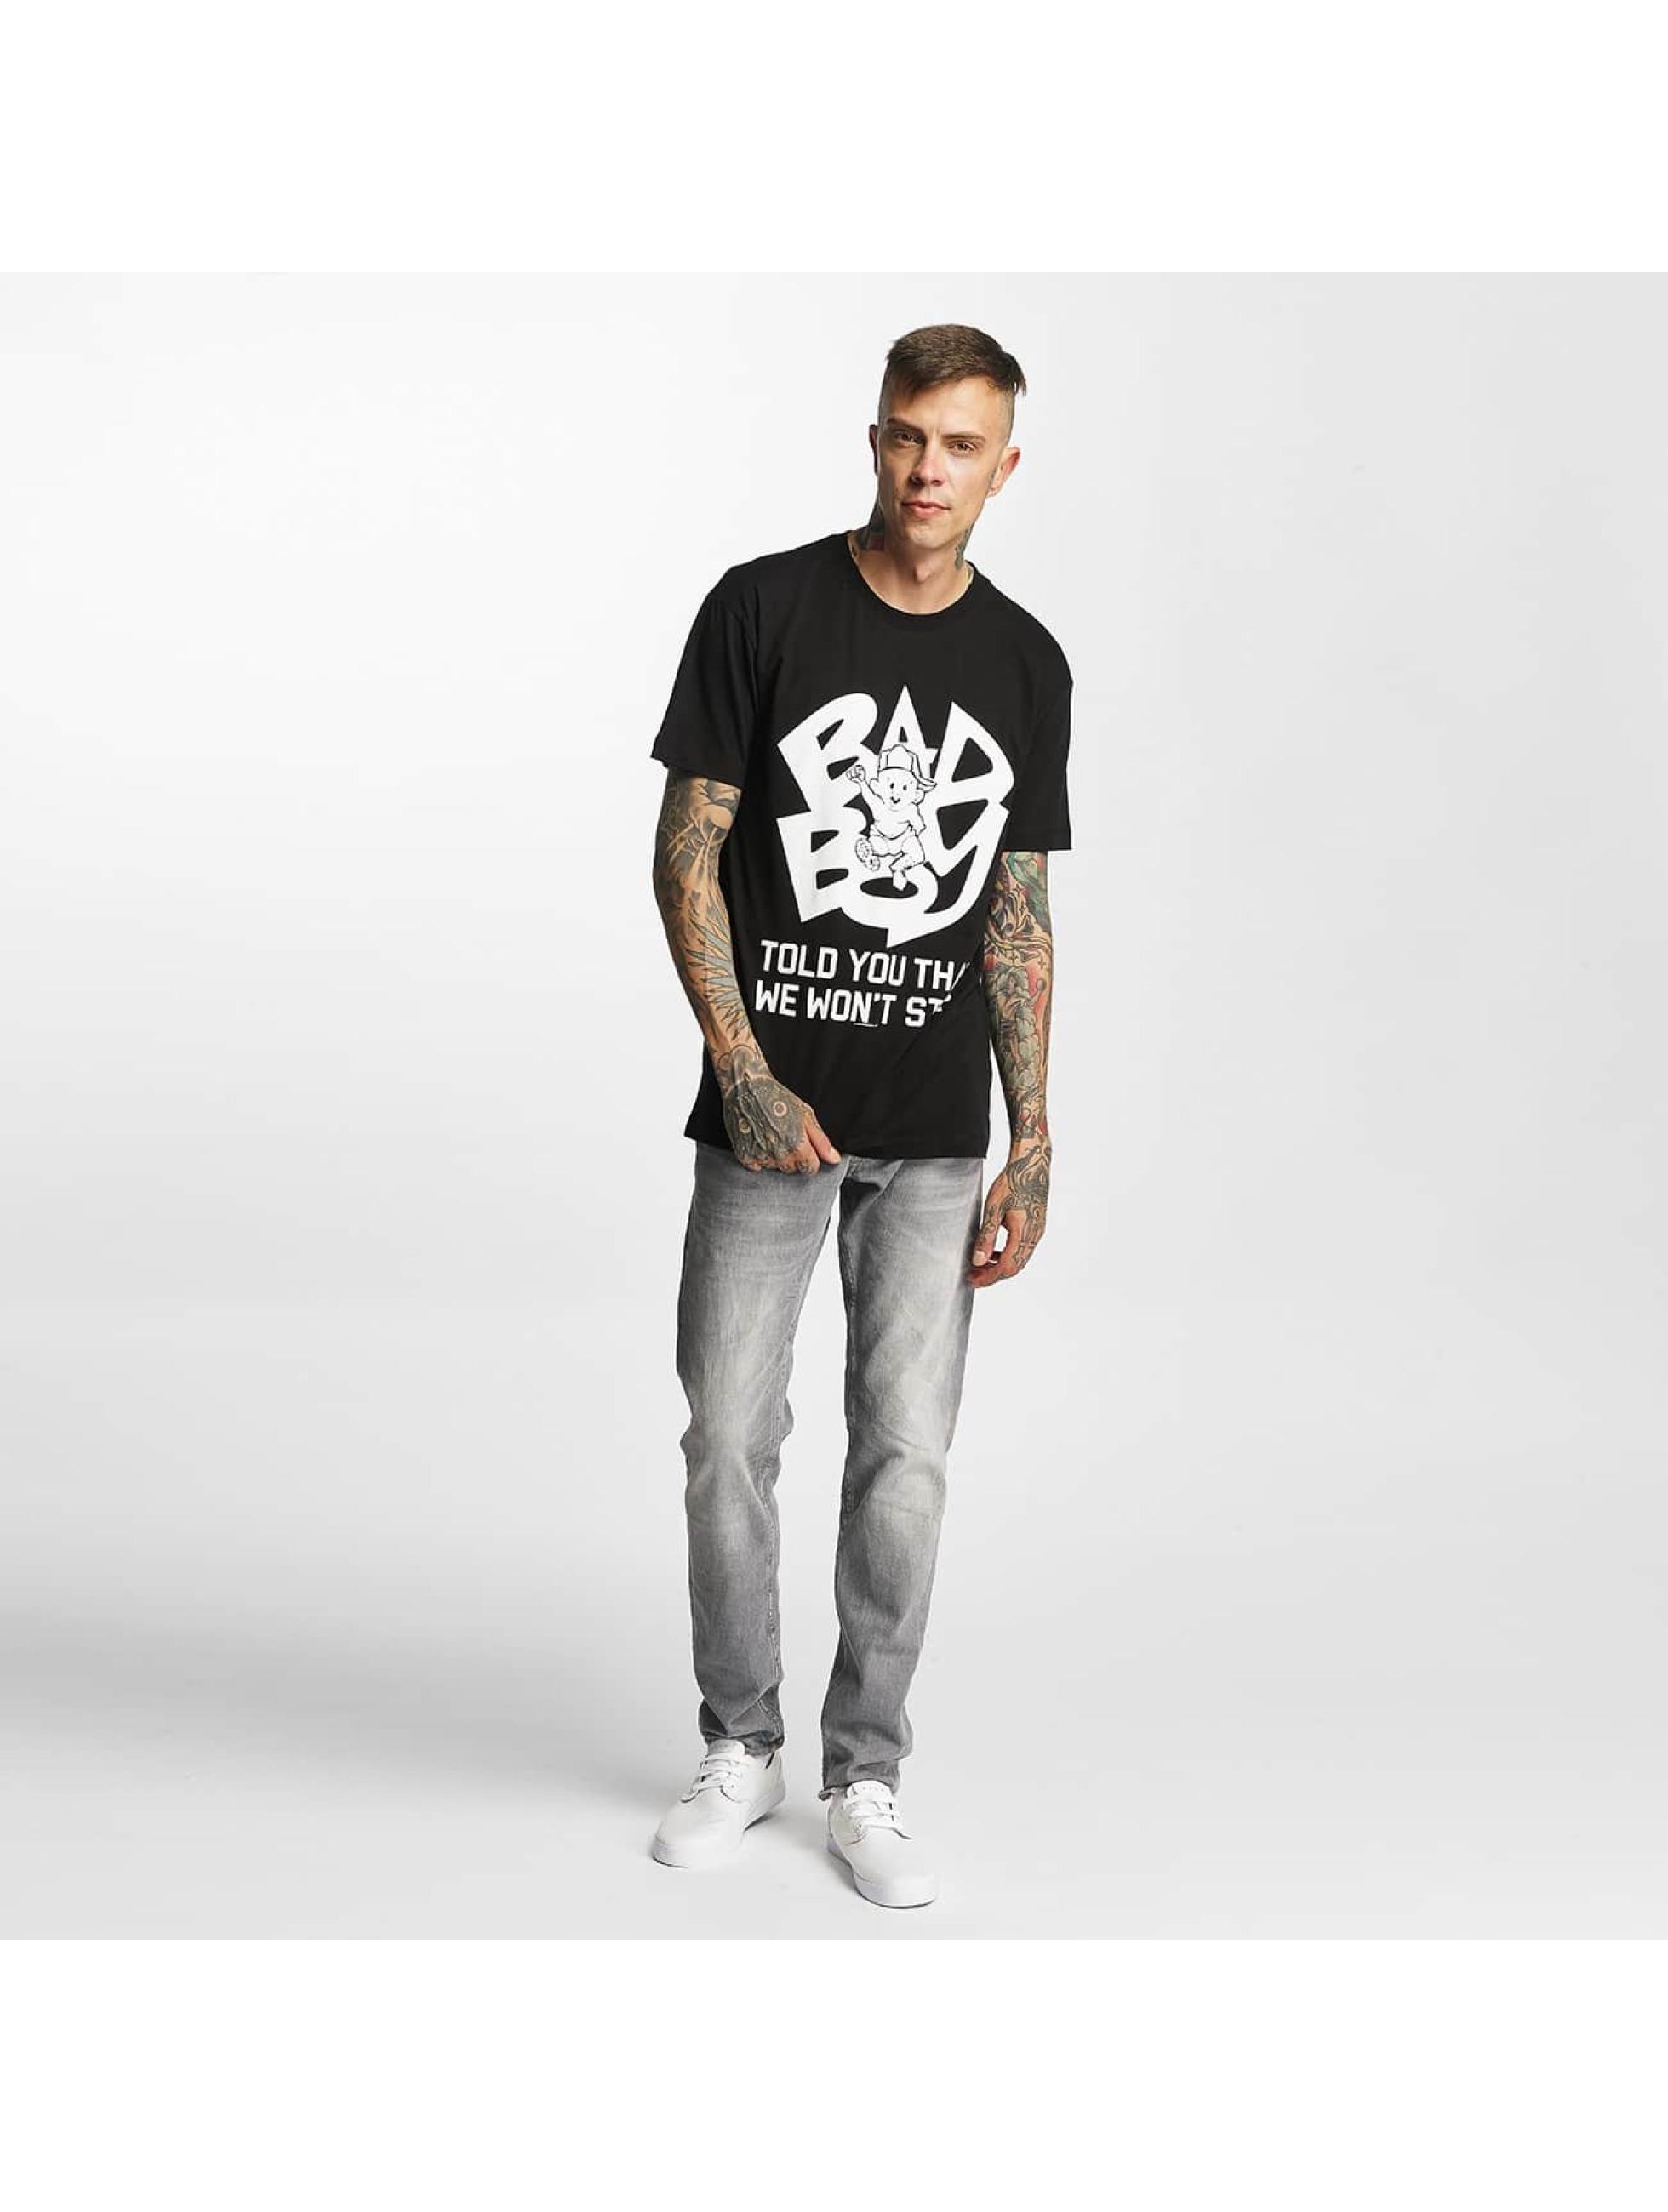 Amplified T-Shirt Bad Boy - Told You That We Wont Stop schwarz